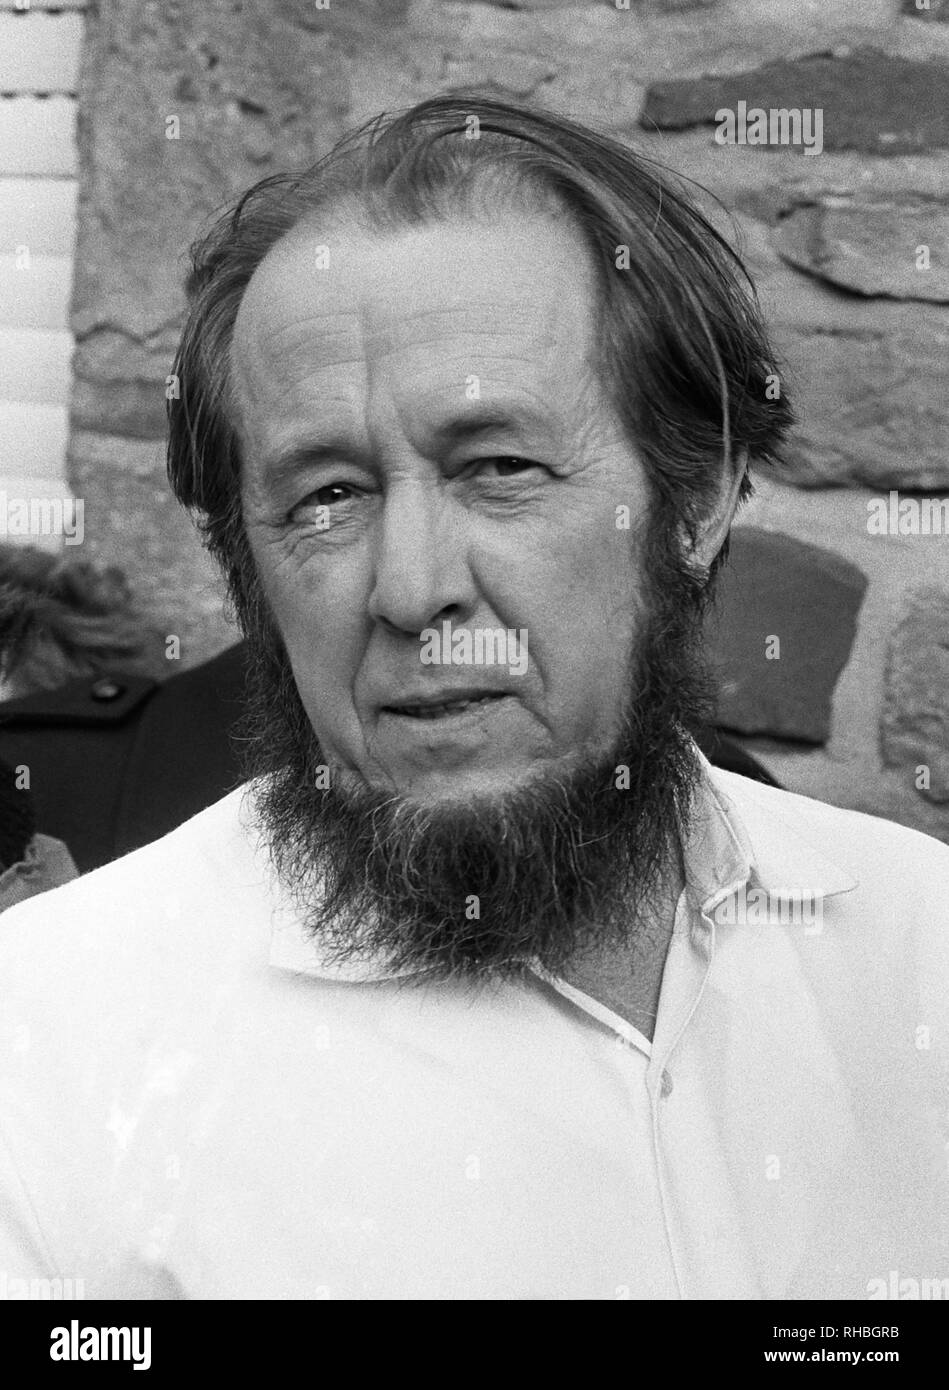 Russian writer Aleksandr Solzhenitsyn in 1974, after being exiled from the Soviet Union, in Langenbroich, West Germany where he was staying in the home of writer Heinrich Böll. - Stock Image